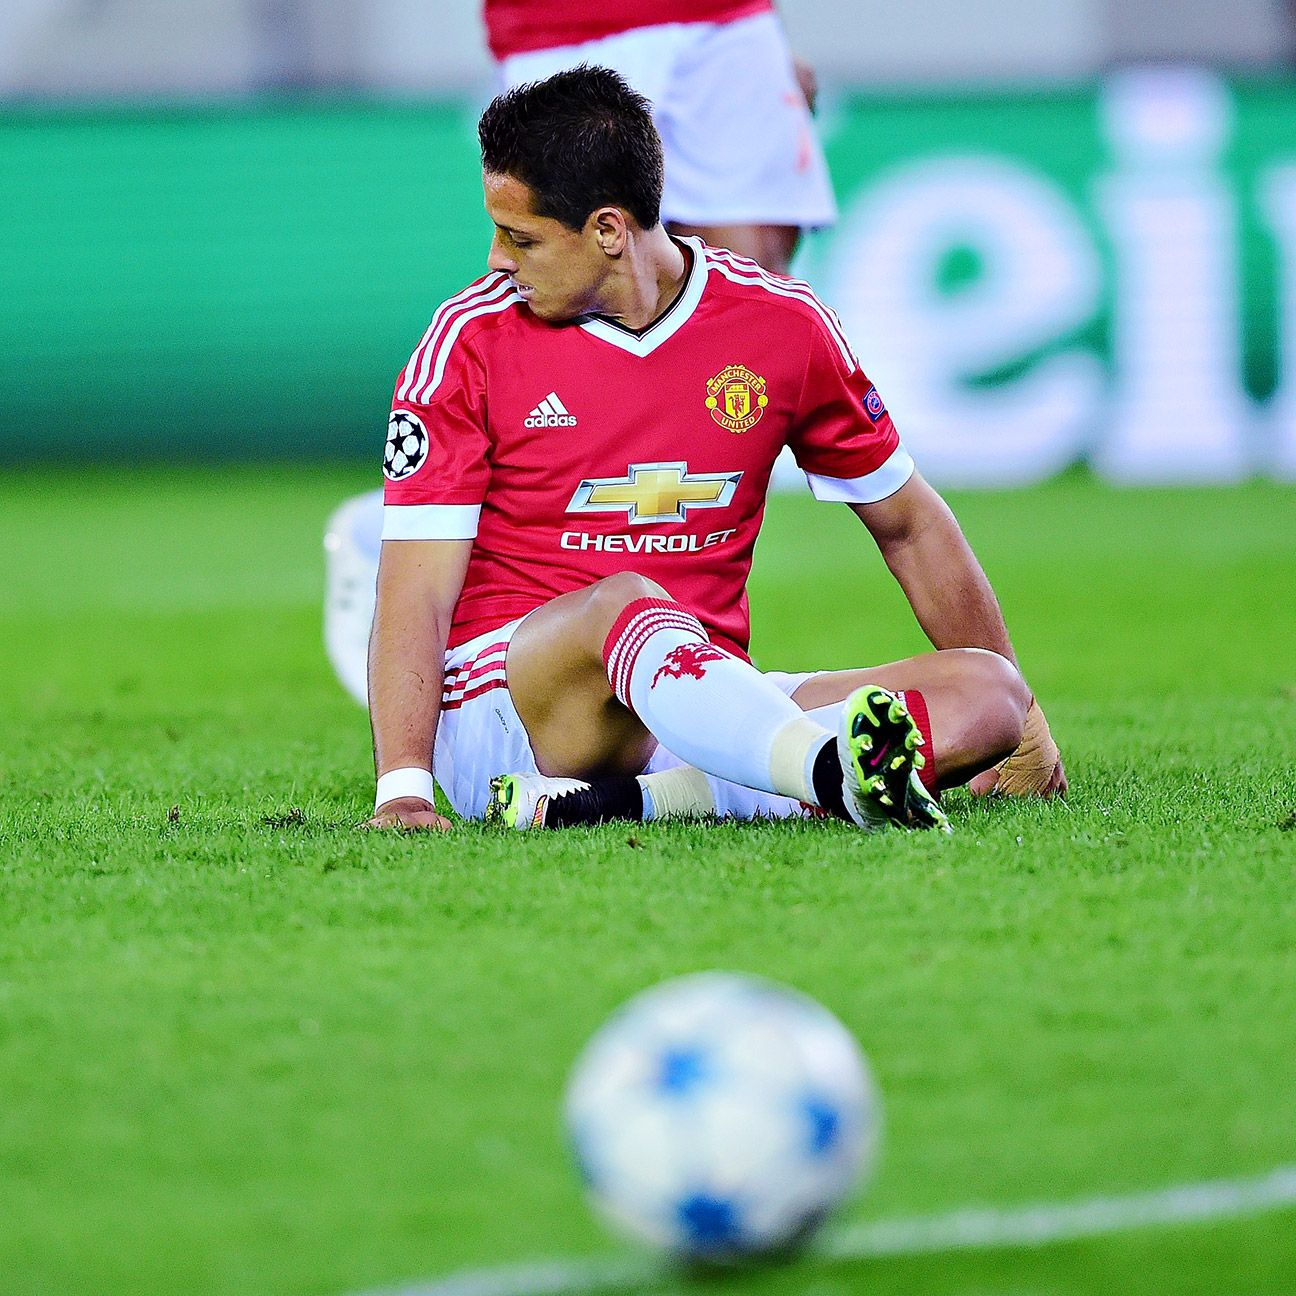 A slip on a penalty attempt and a missed sitter made it a rough night for Manchester United striker Javier